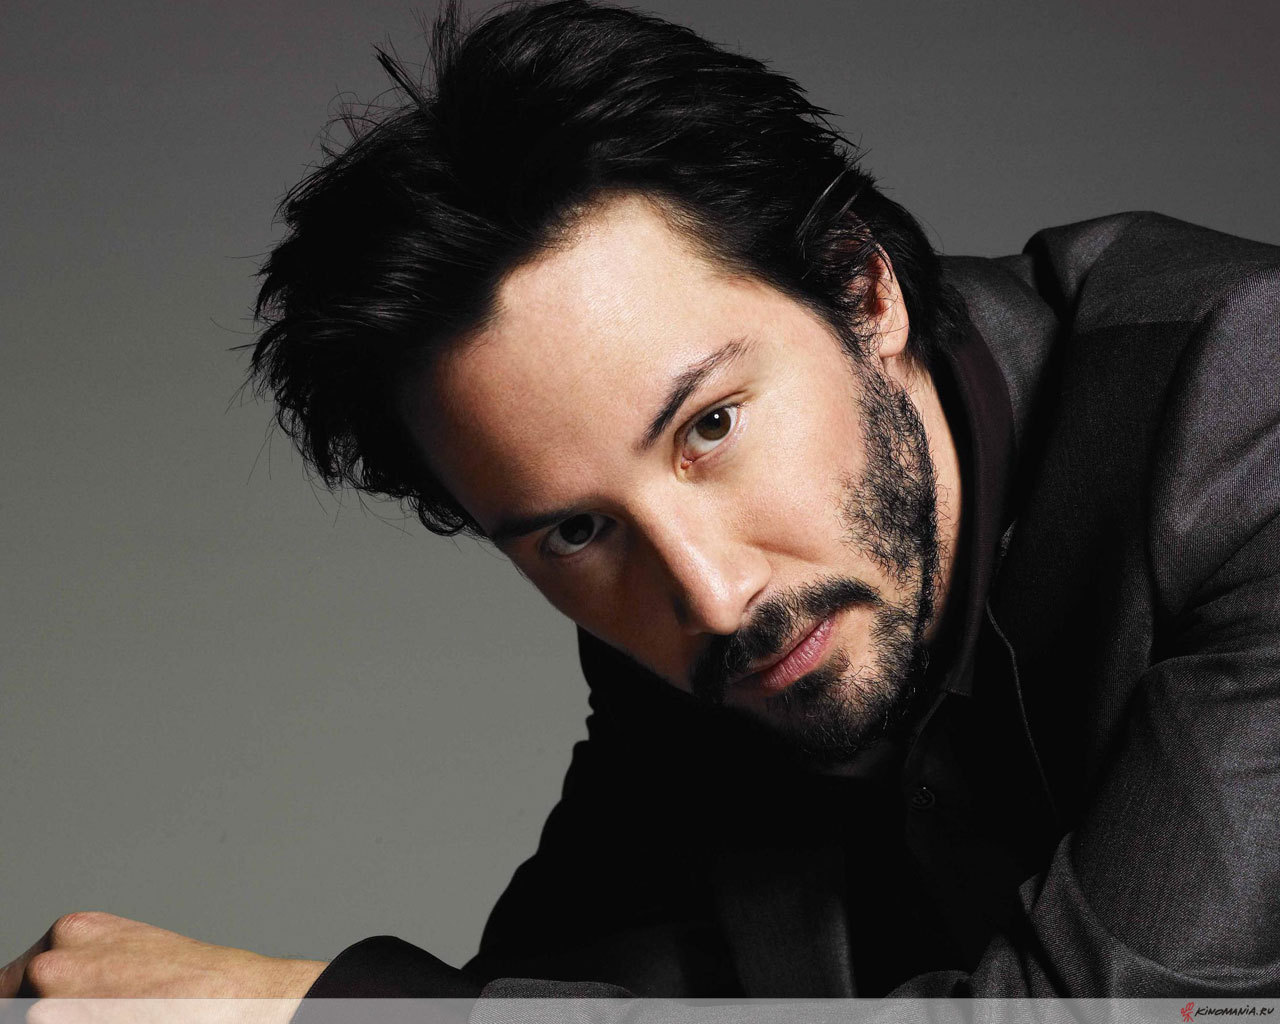 Keanu Reeves Special: 'Speed', 'Devil's Advocate' and 'Bill & Ted's Excellent Adventure'